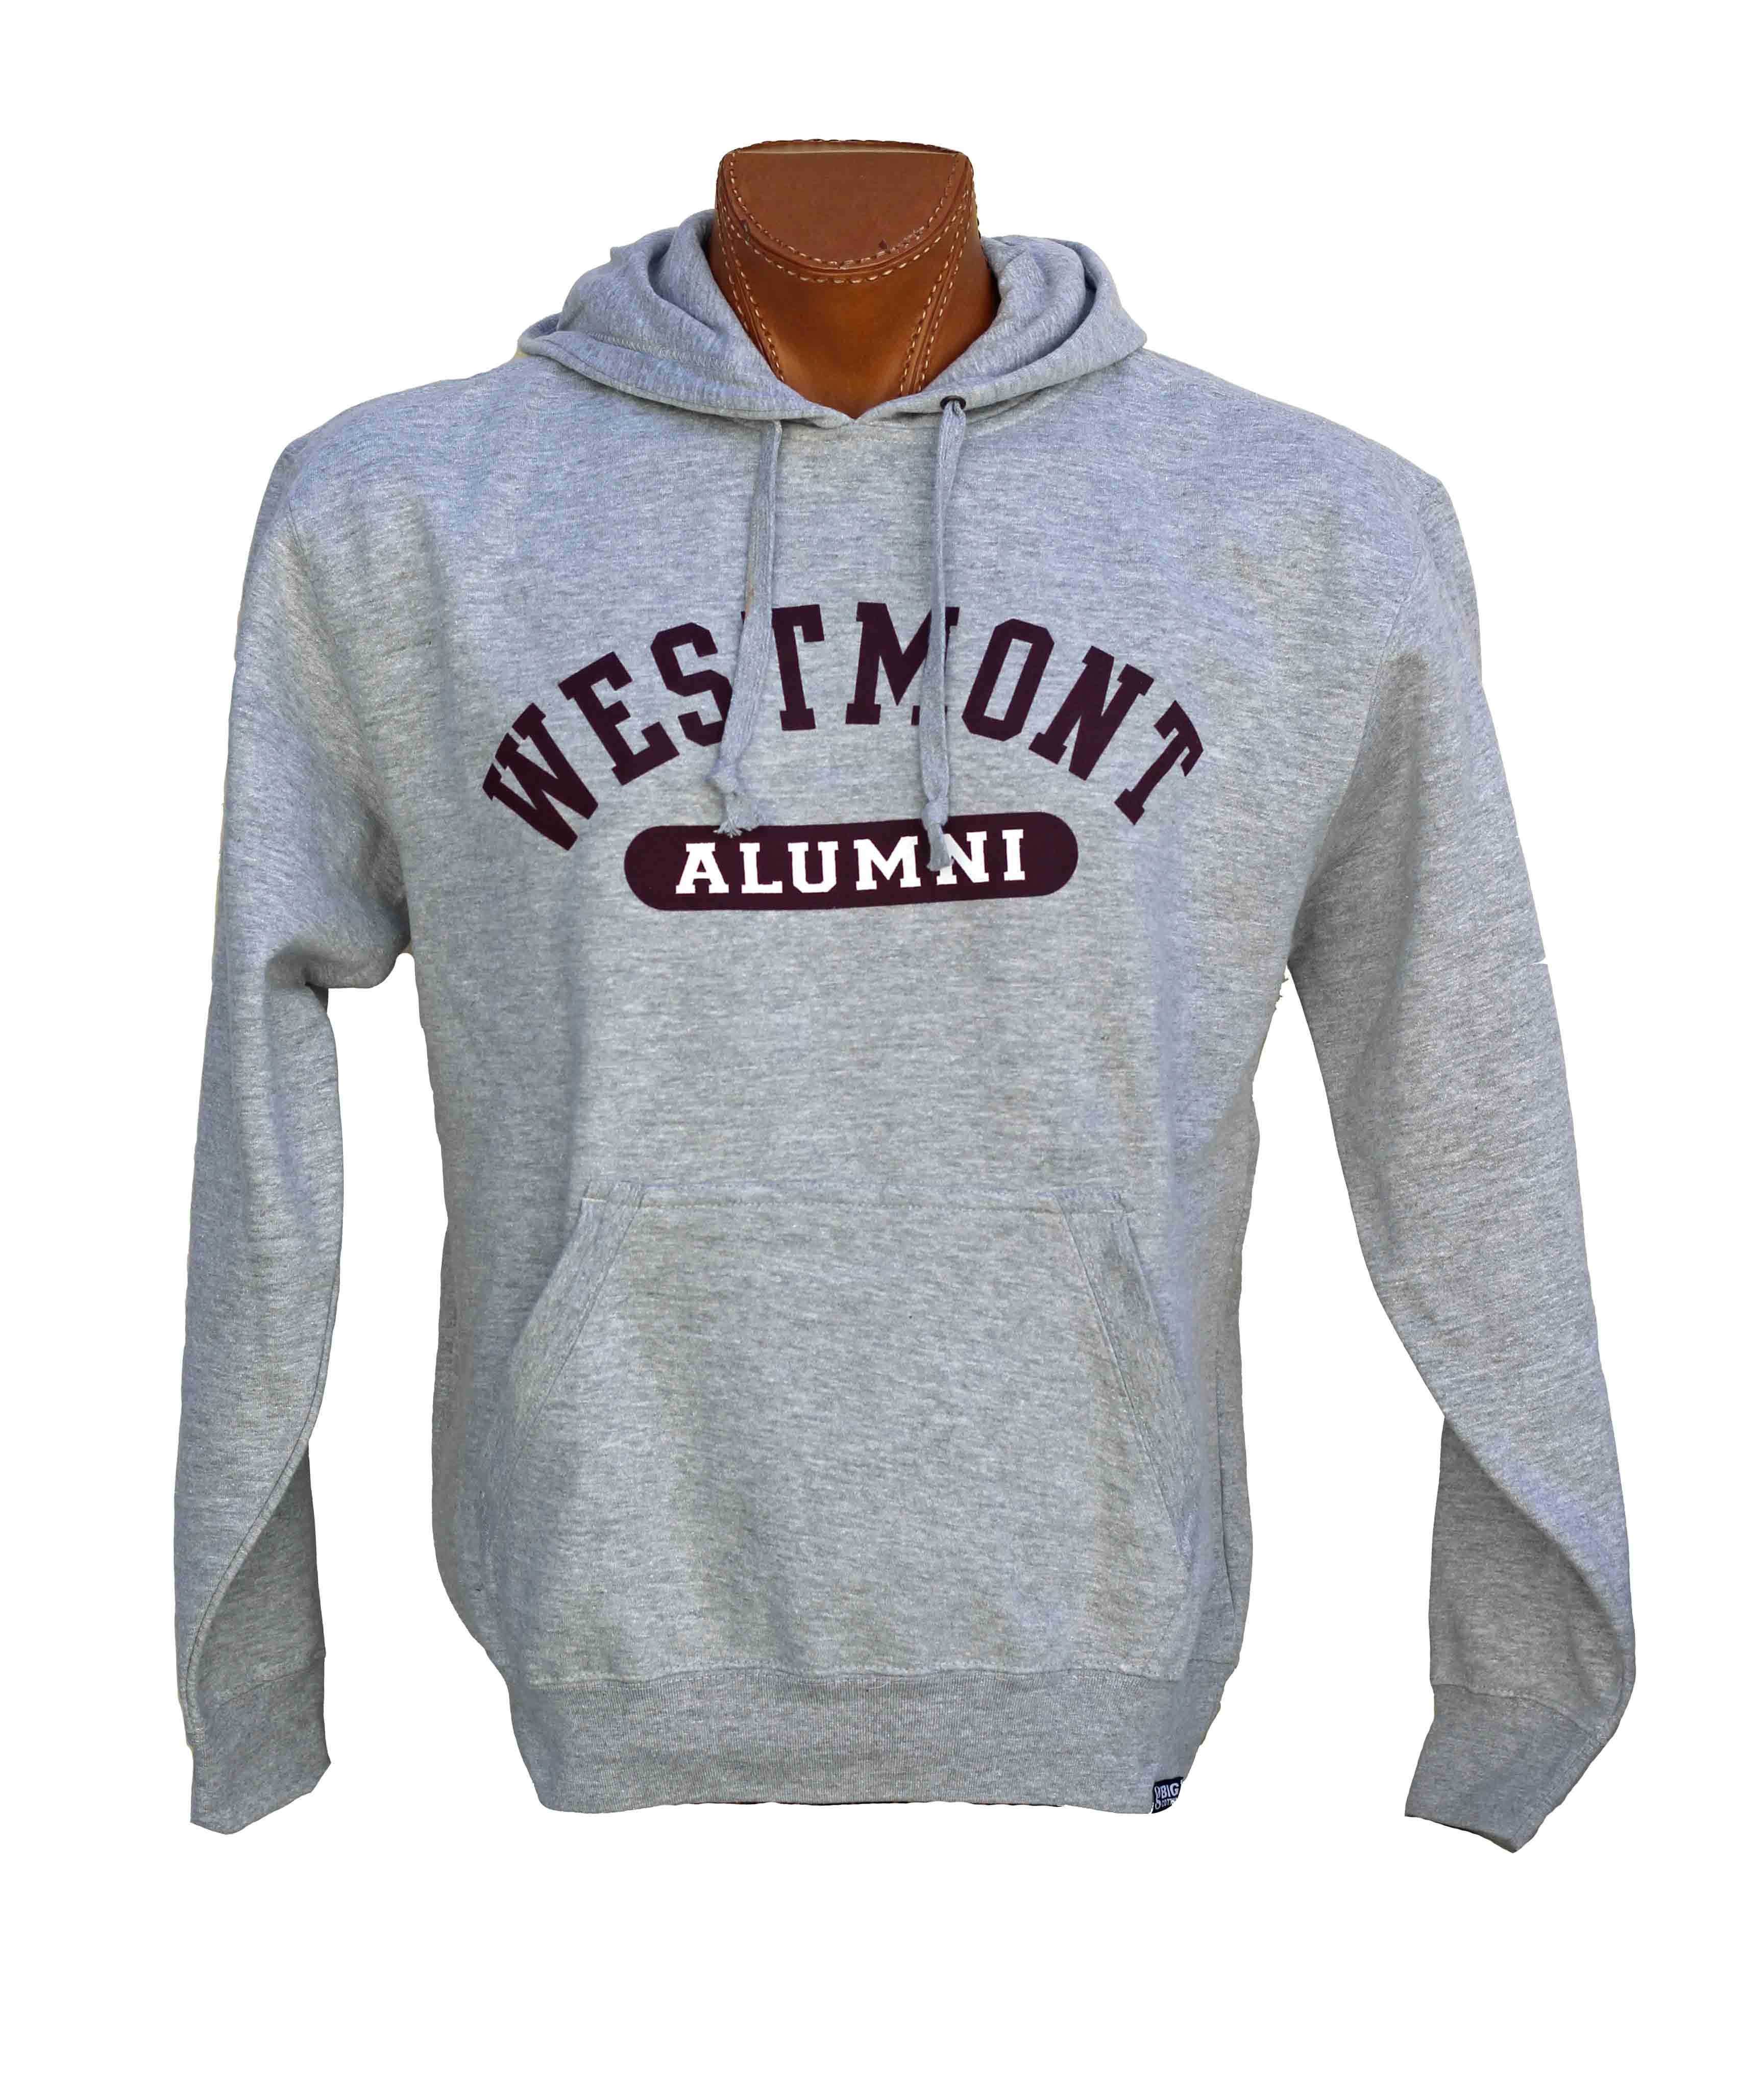 Image for the GFS Westmont Alumni  Hood product